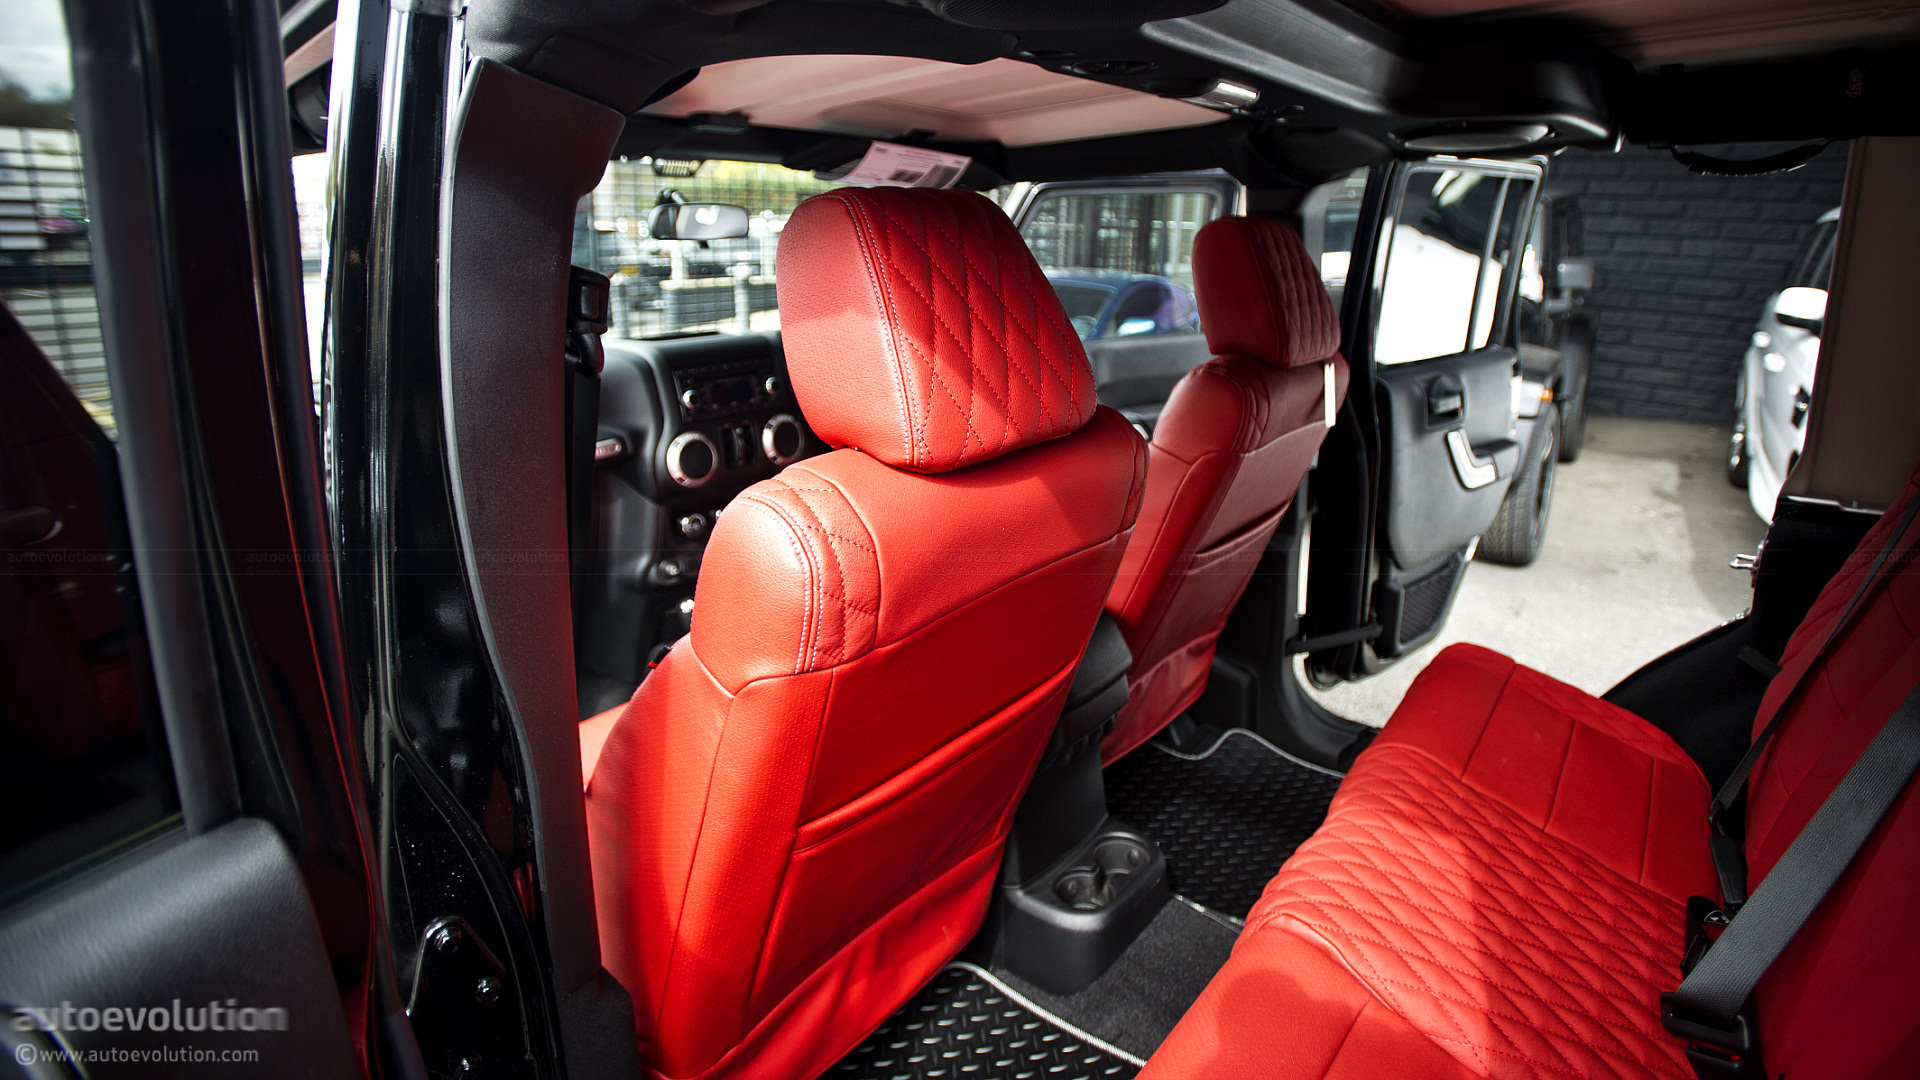 Range Rover Interior >> Kahn Factory Visit - Behind the Tuning Scenes - autoevolution